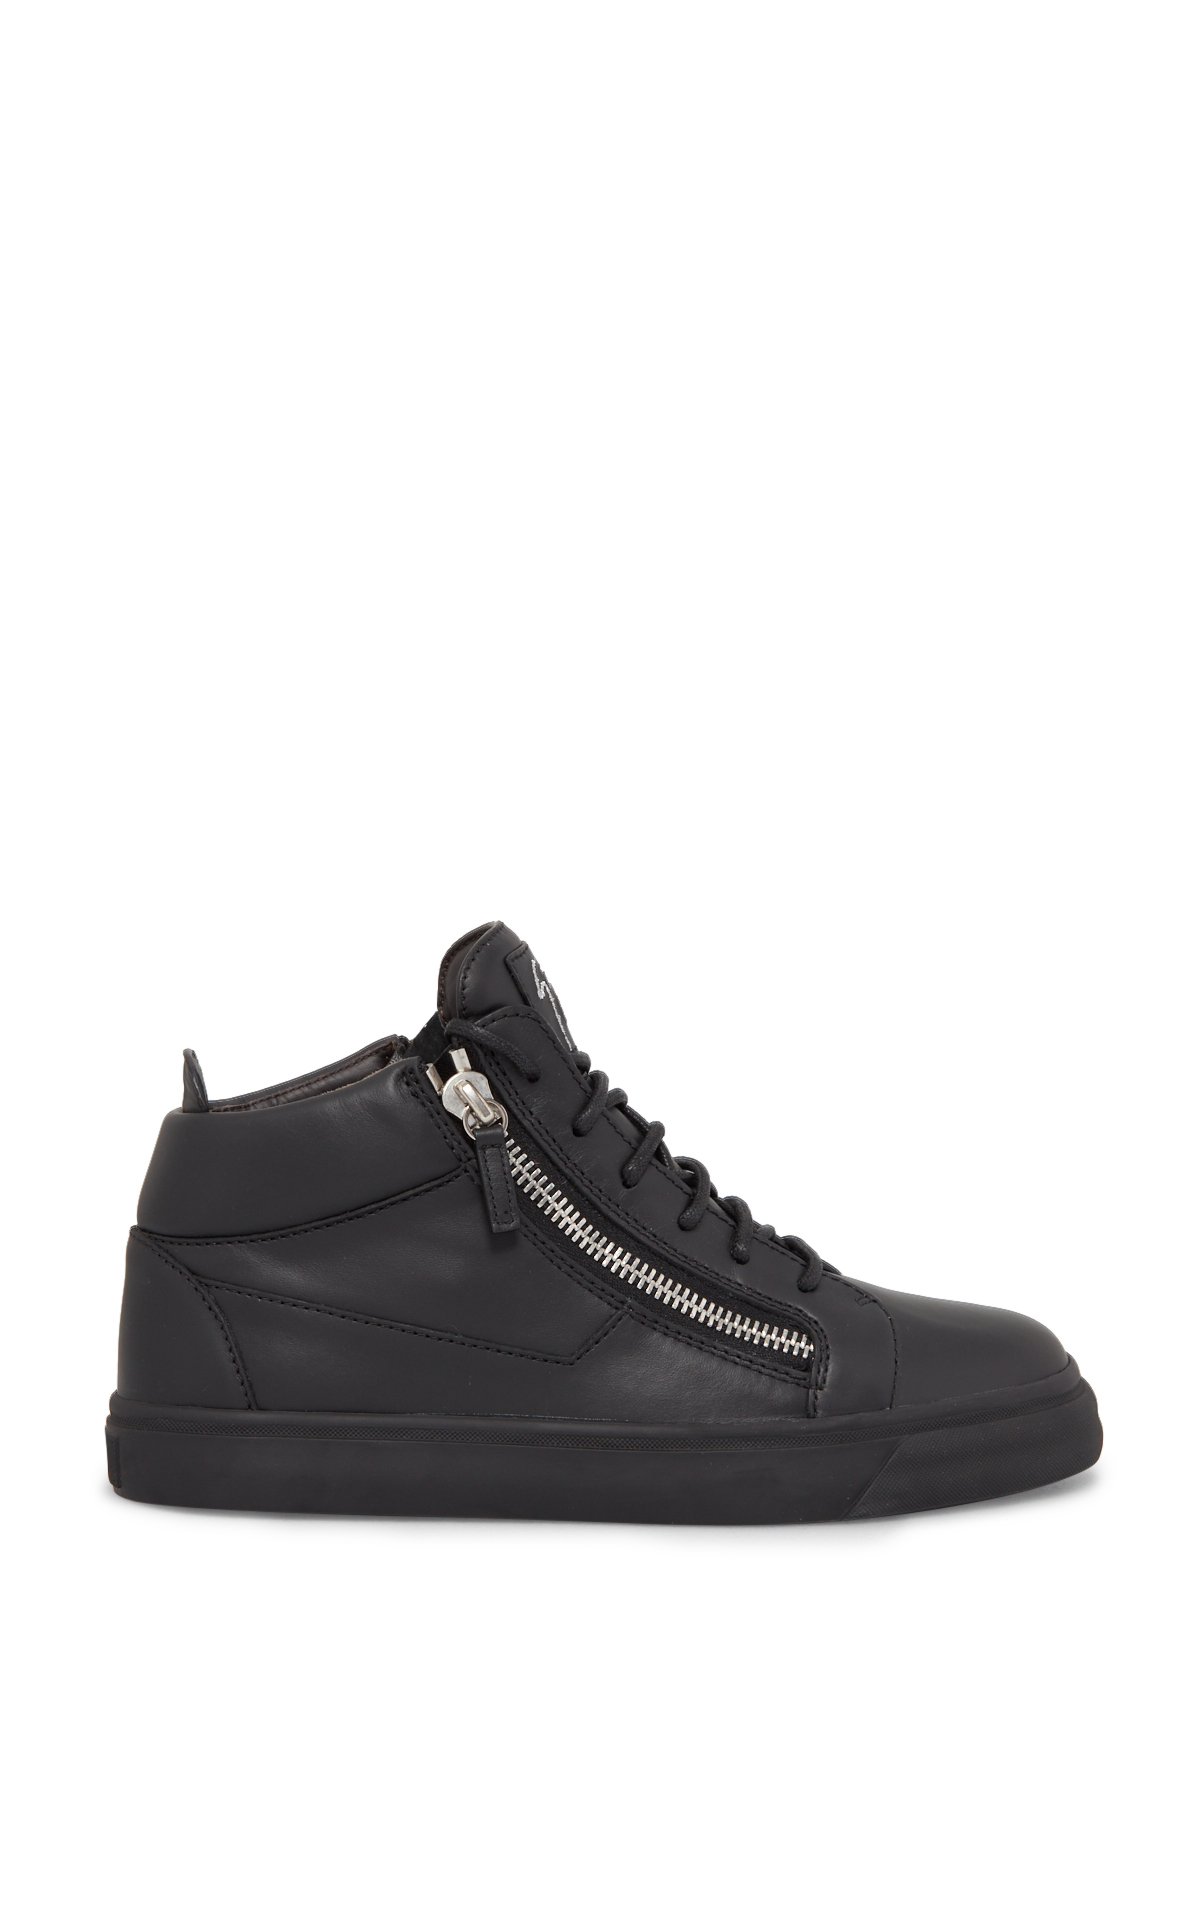 Guiseppe Zanotti Black high-top trainers*